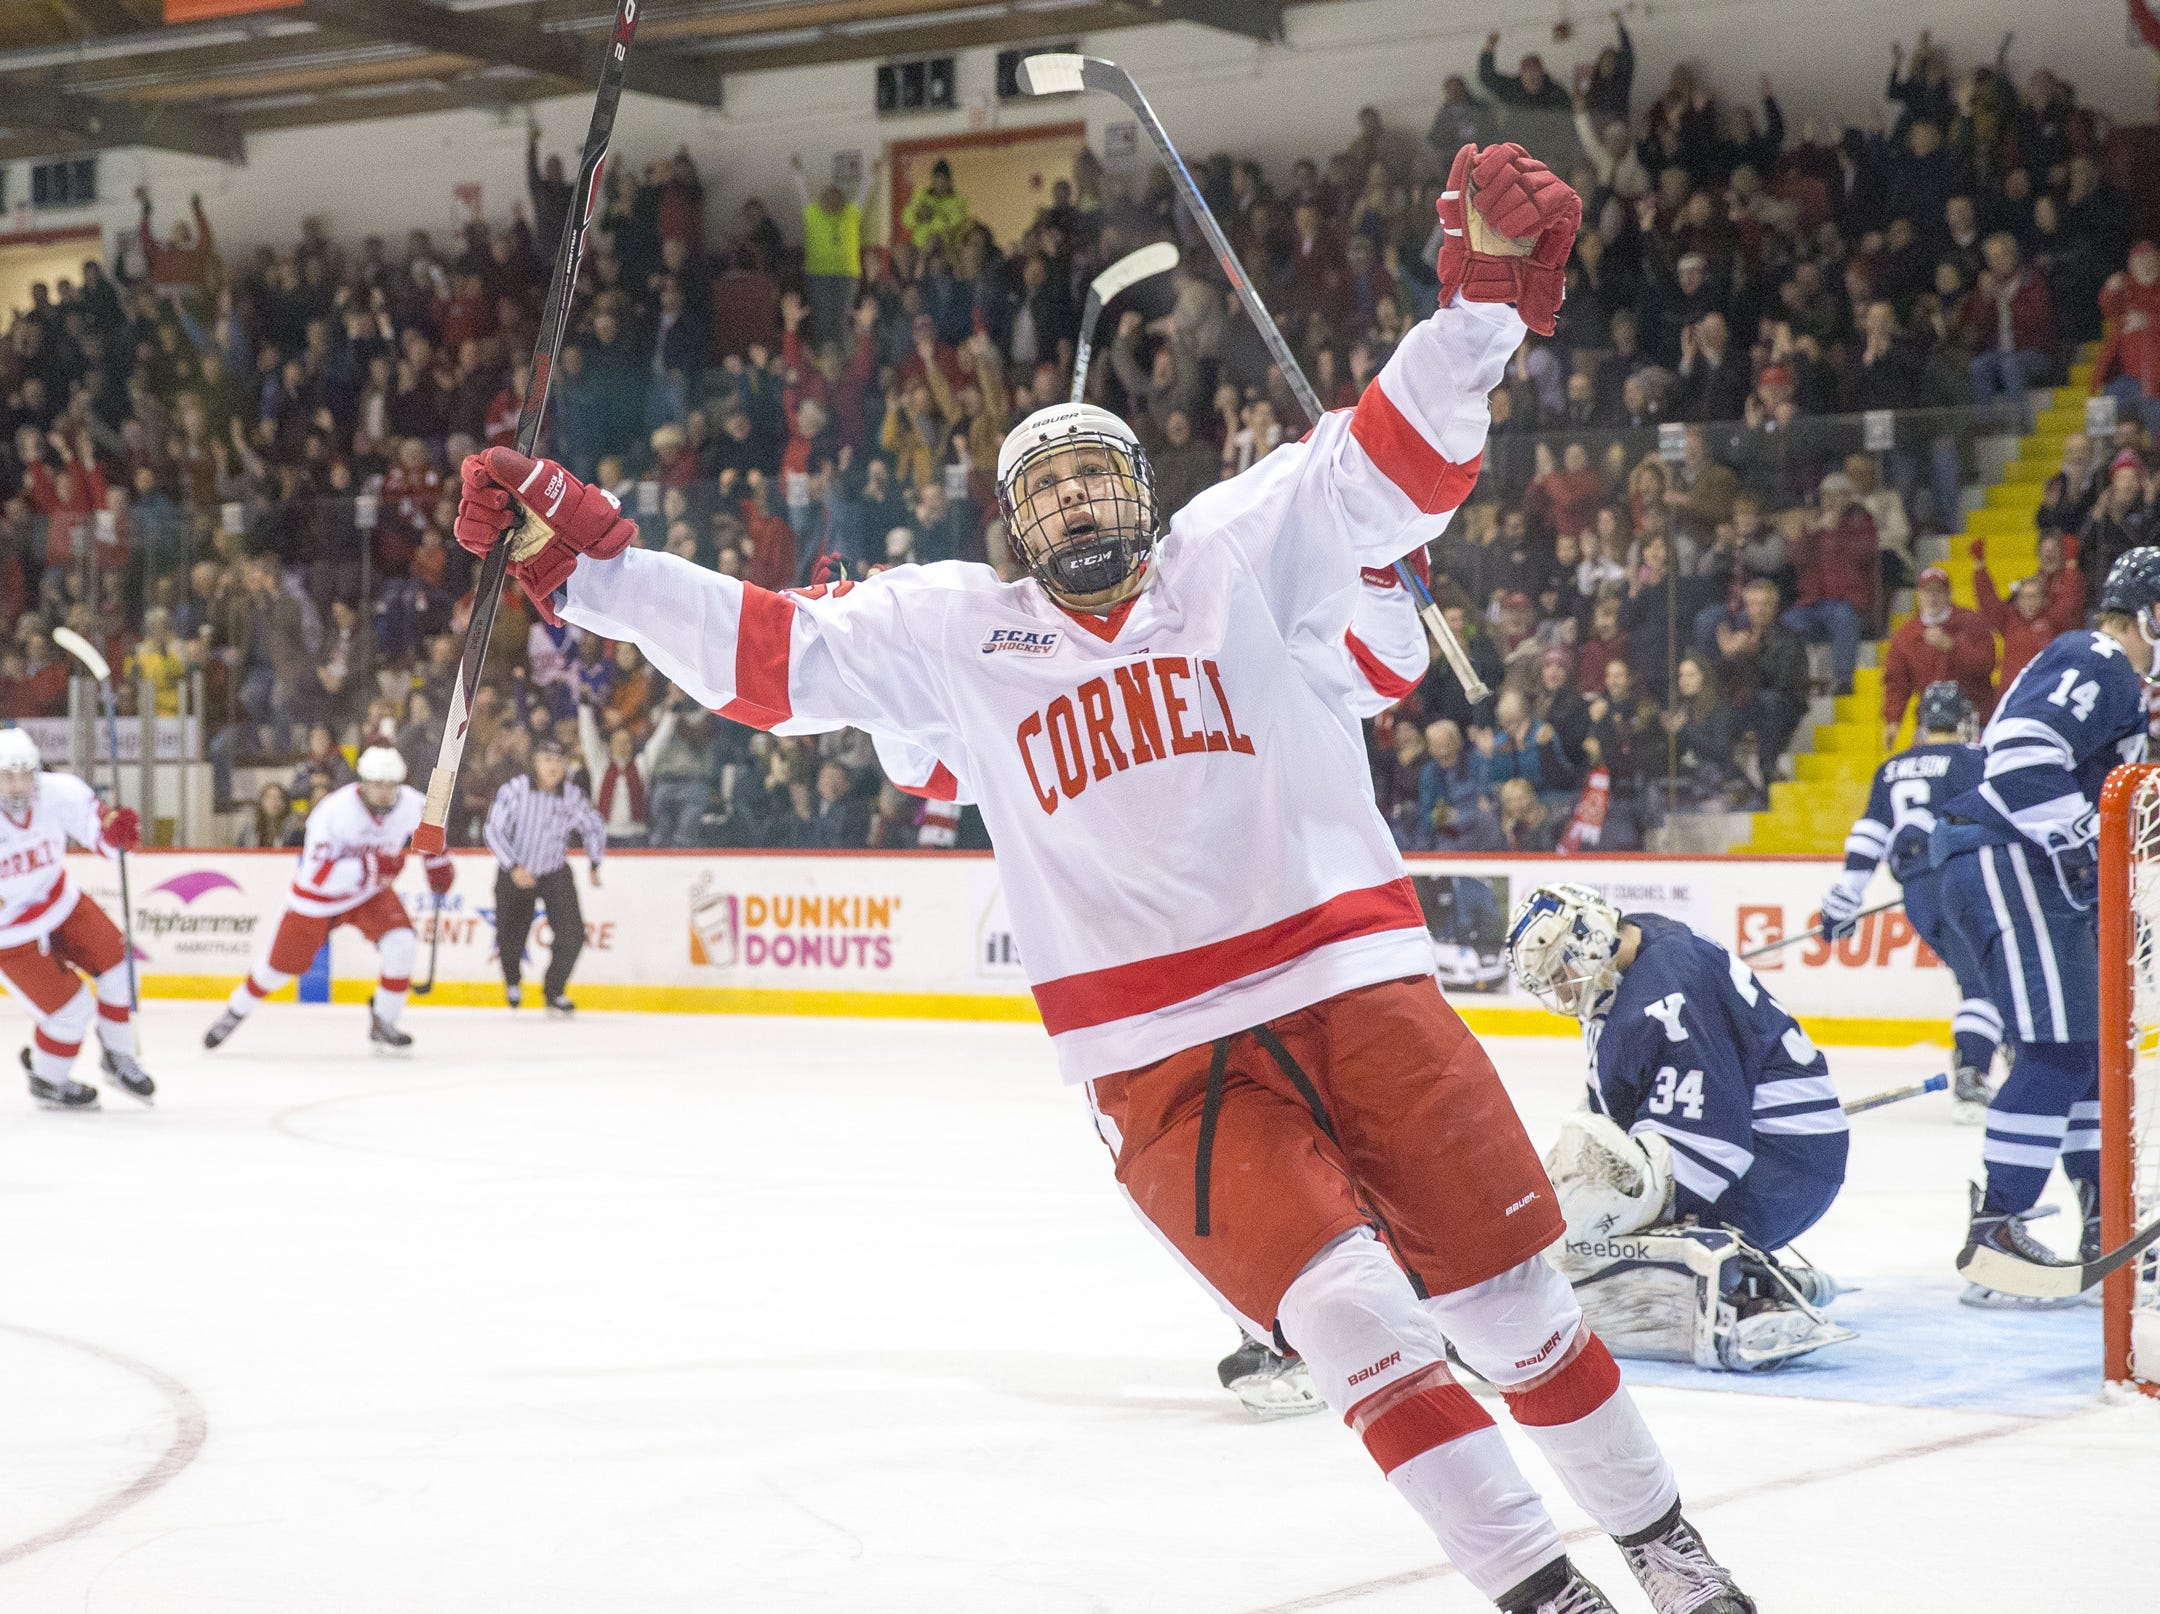 2014: Cornell sophomore center Jeff Kubiak celebrates the first career goal by freshman defenseman Ryan Bliss (far left) midway through Cornell's 3-2 defeat of Yale on Nov. 21.